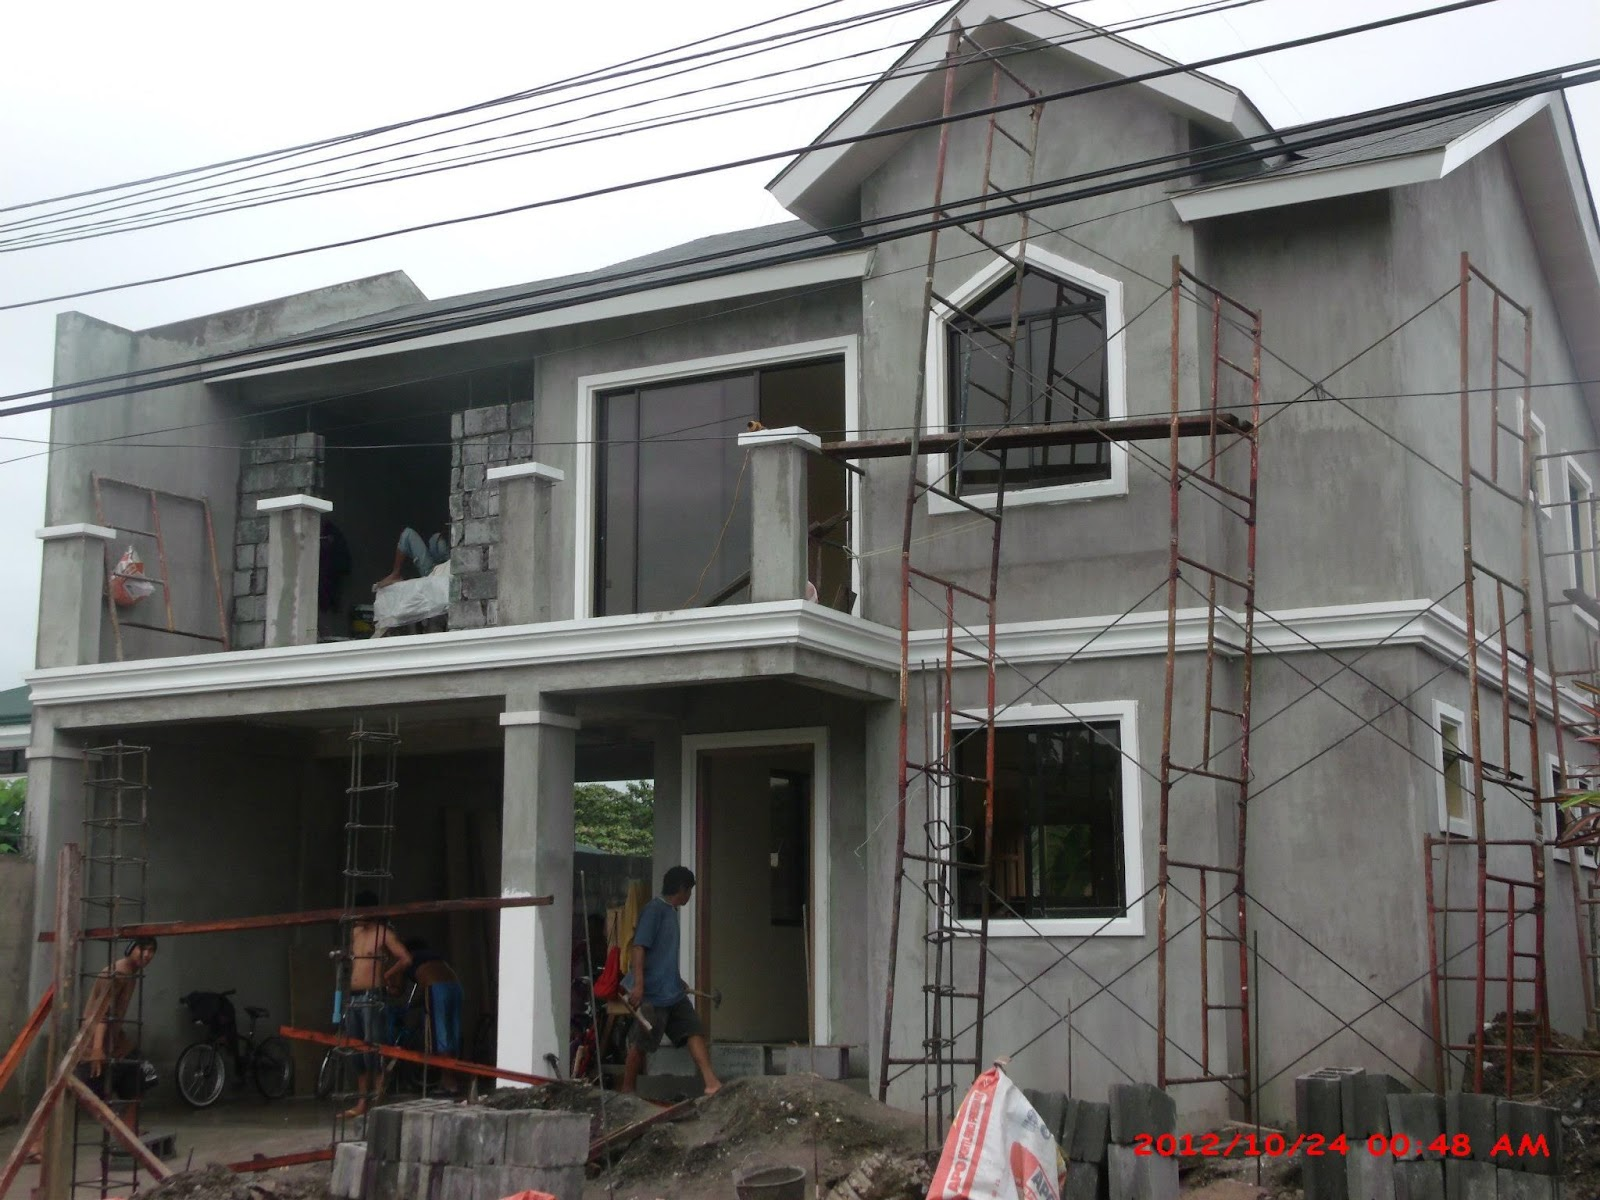 homes builders house floor plans custom home builders home builders custom new home builders building a new house new homes builders house design house designs philippines house design phillipine house design home design modern house design iloilo